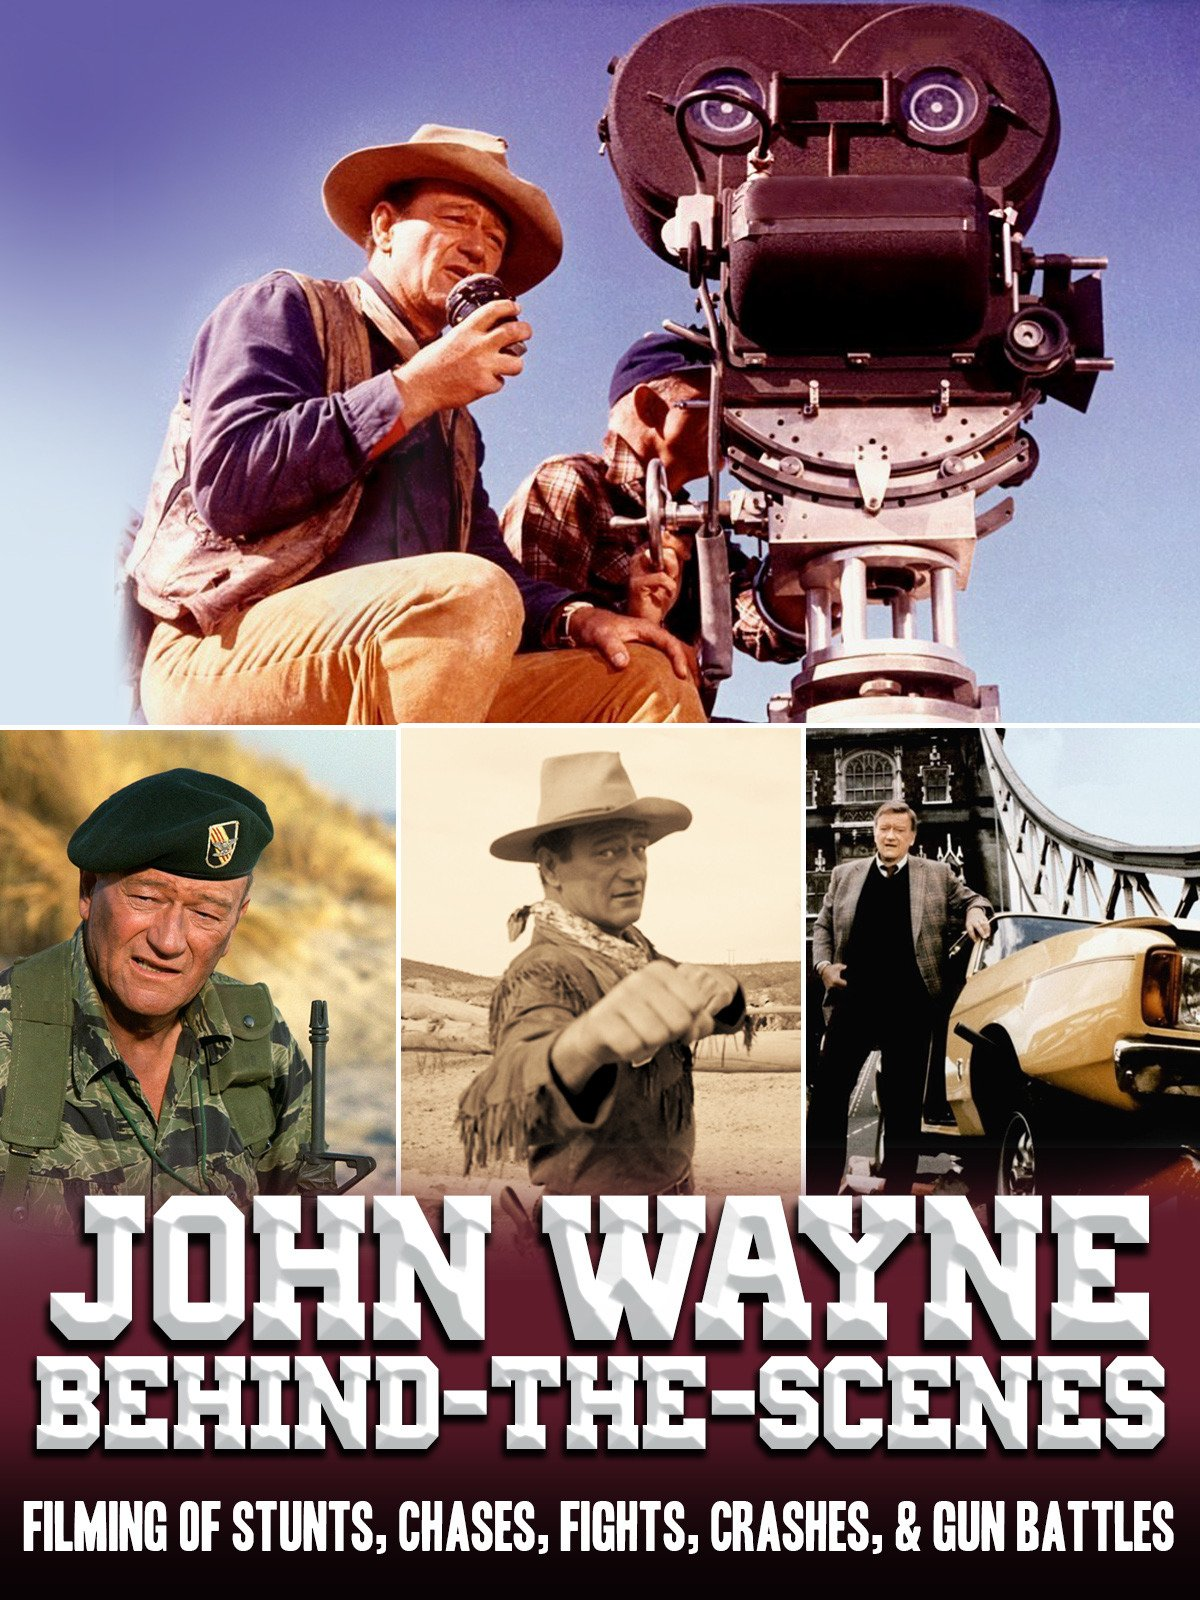 John Wayne Behind-the-Scenes...Filming Of Stunts, Chases, Fights, Crashes, & Gun Battles